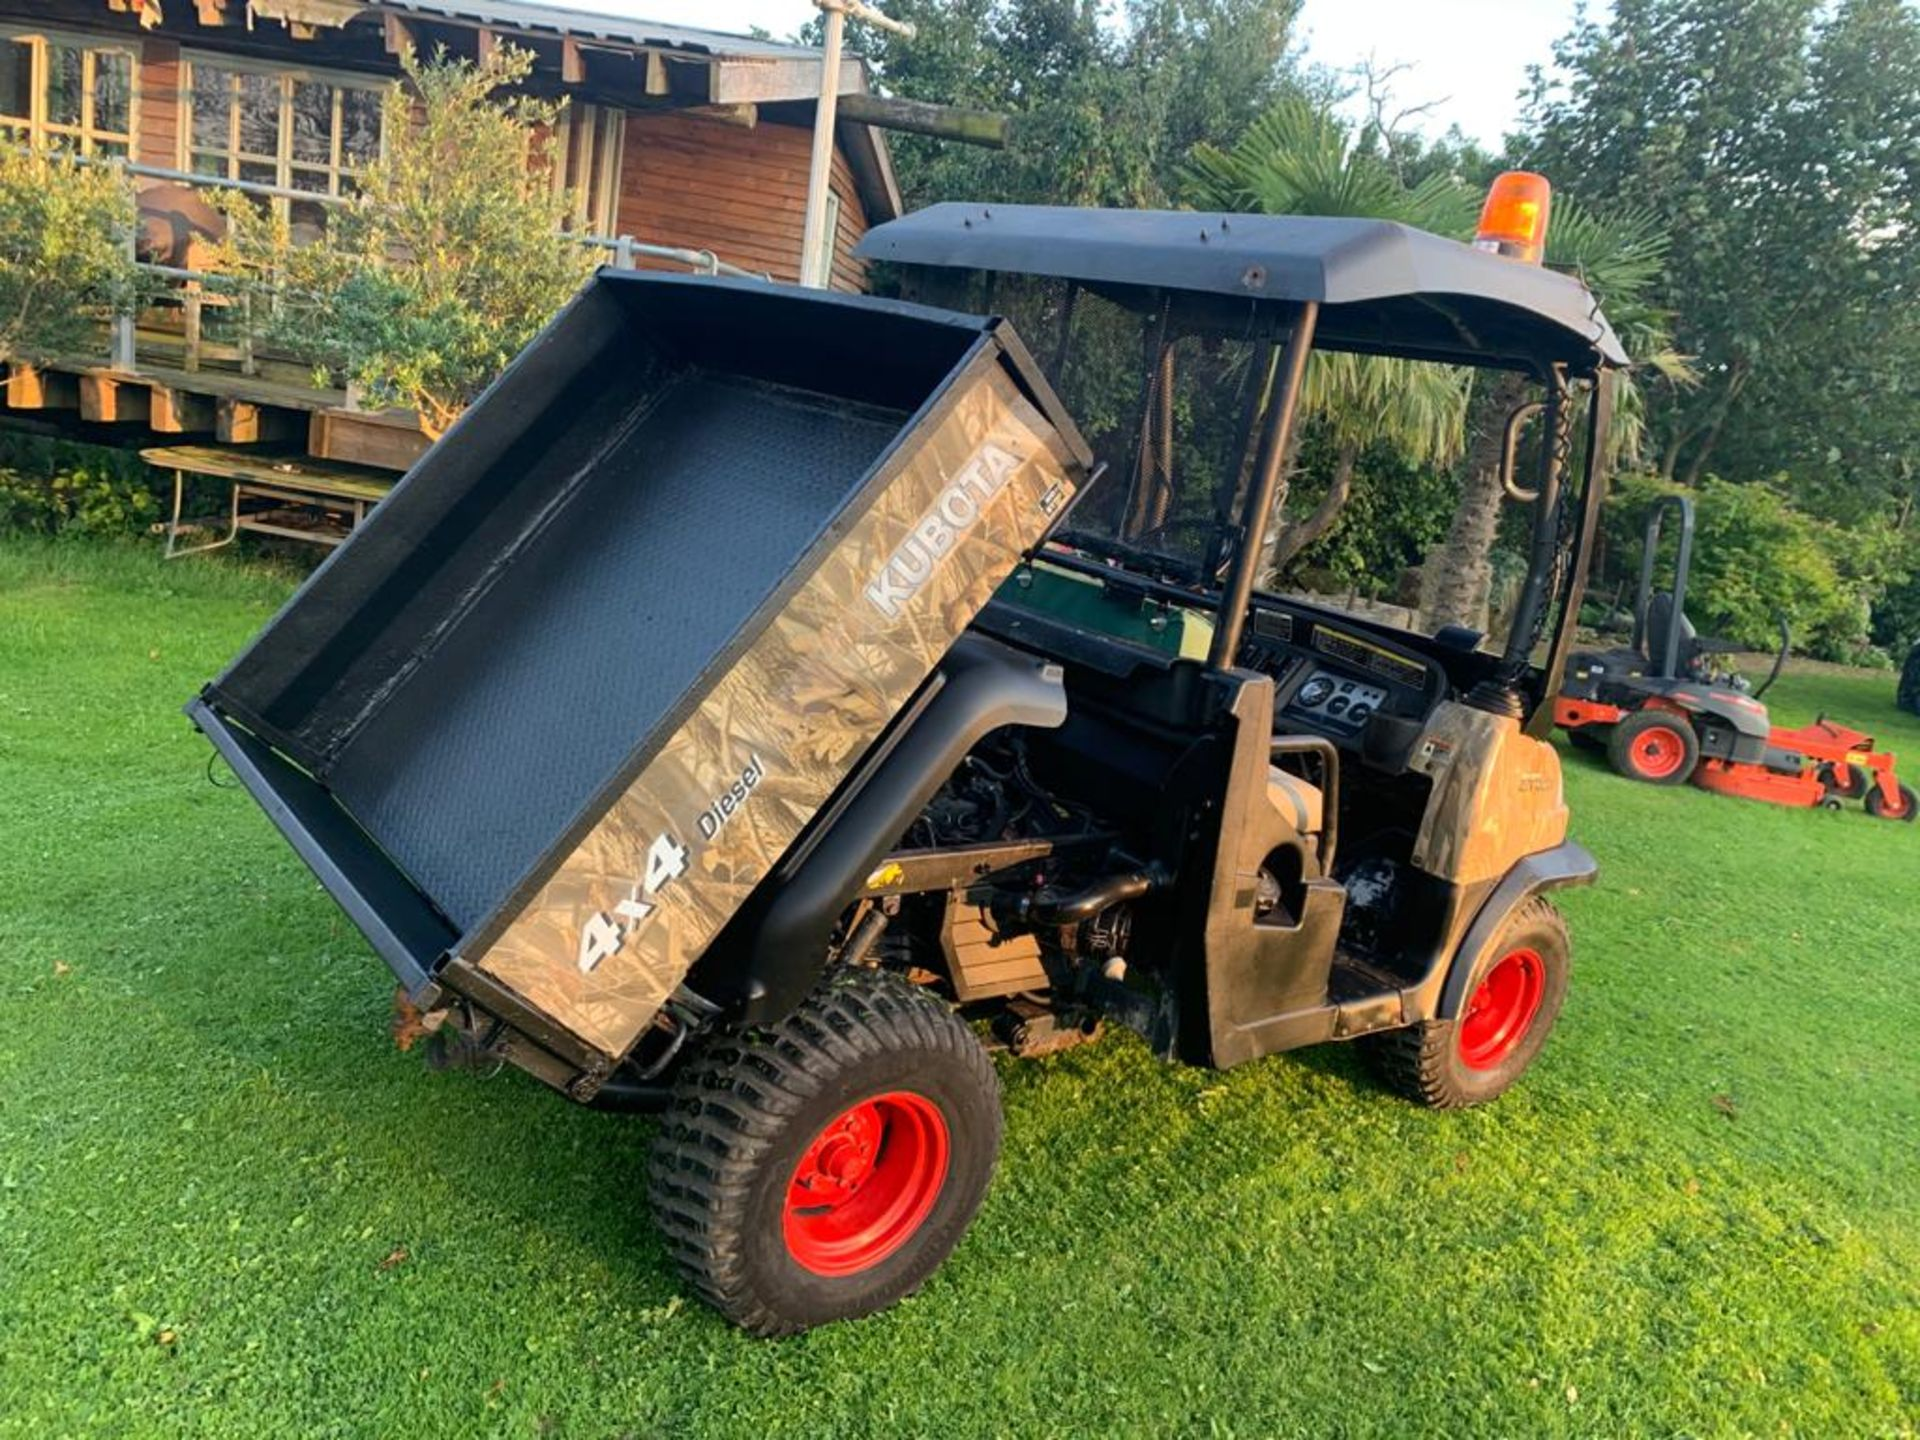 KUBOTA 4X4 DIESEL HYDRAULIC TIPPER BUGGY, RUNS, WORKS AND TIPS *PLUS VAT* - Image 6 of 22